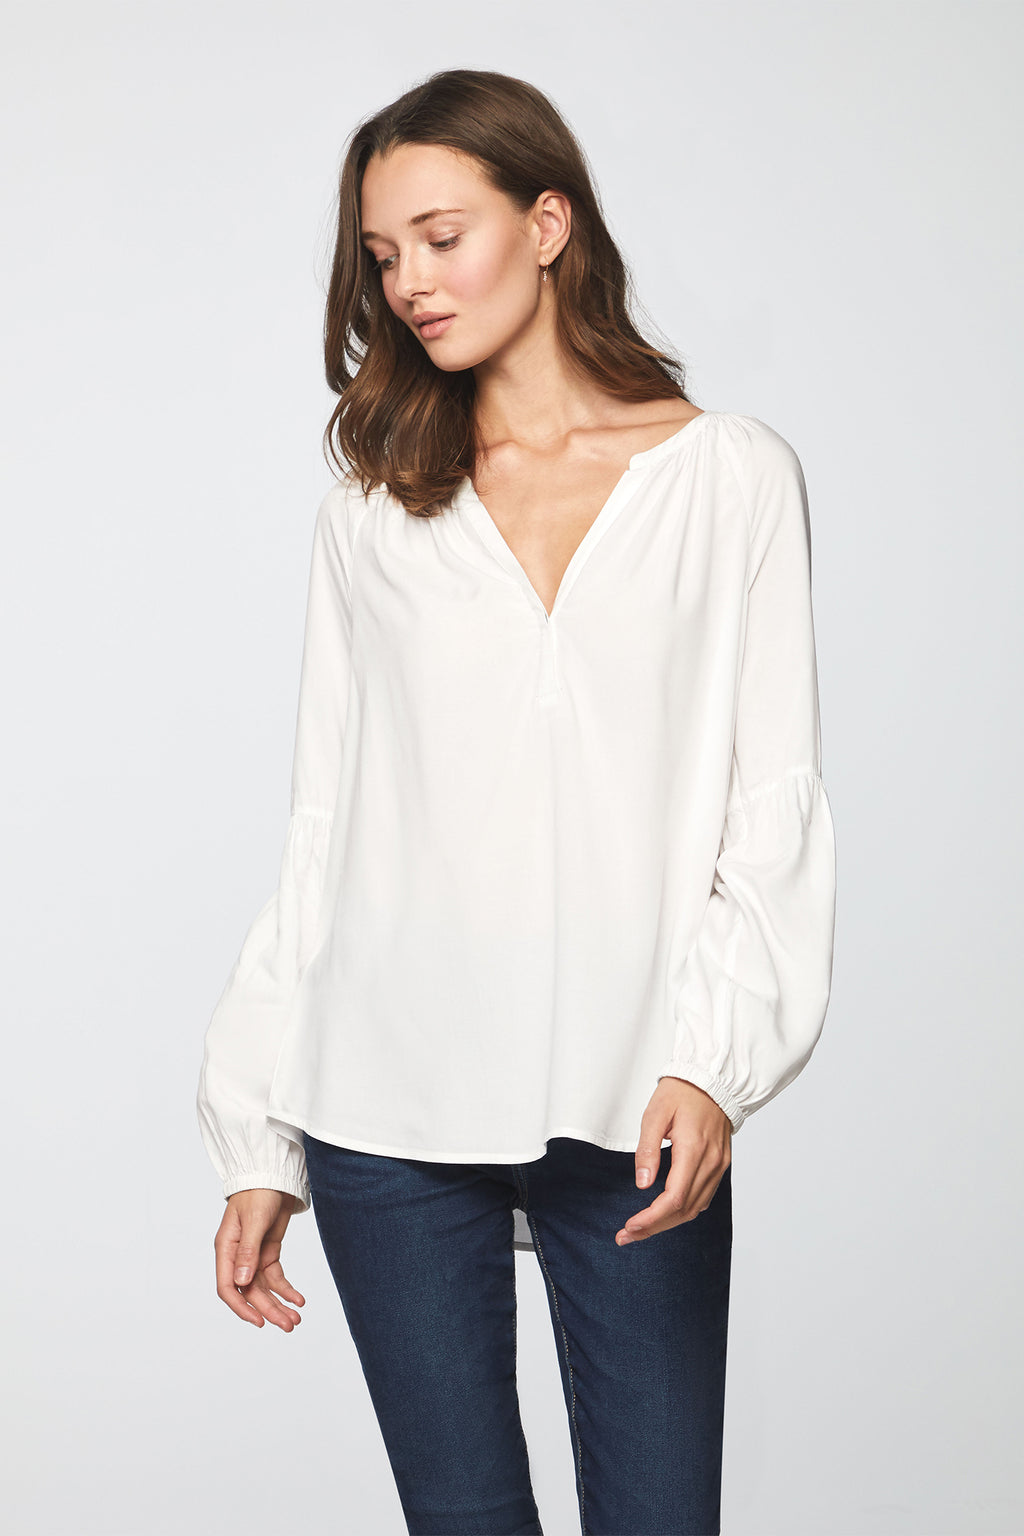 MINDY TOP - WHITE